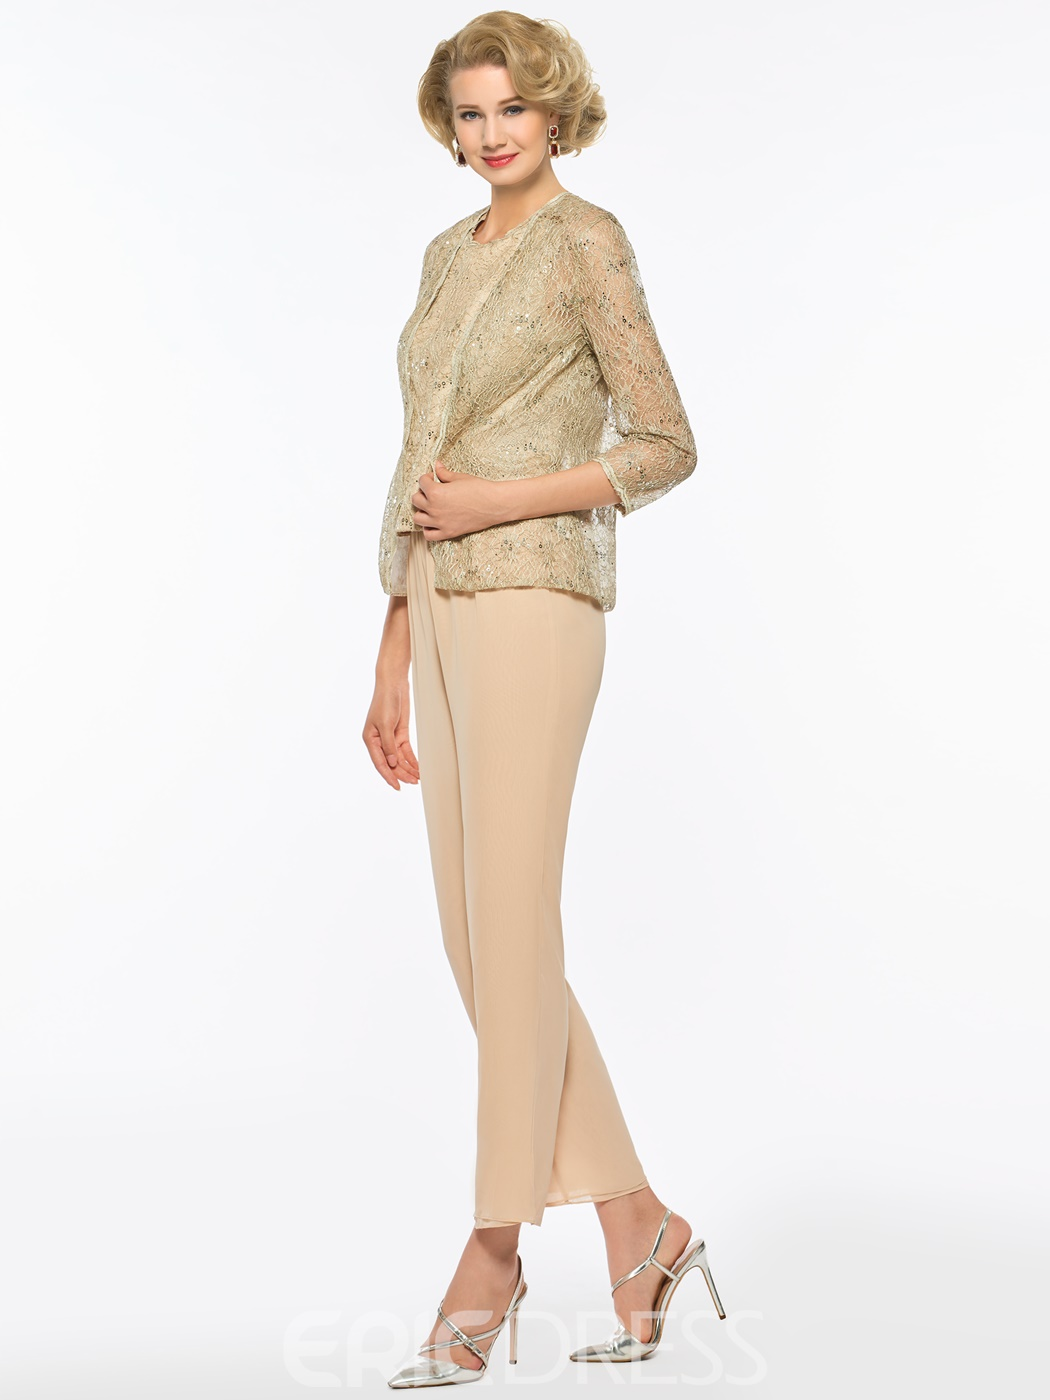 Ericdress 3 Pieces Sequins Mother of The Bride Junpsuit with Lace Jacket